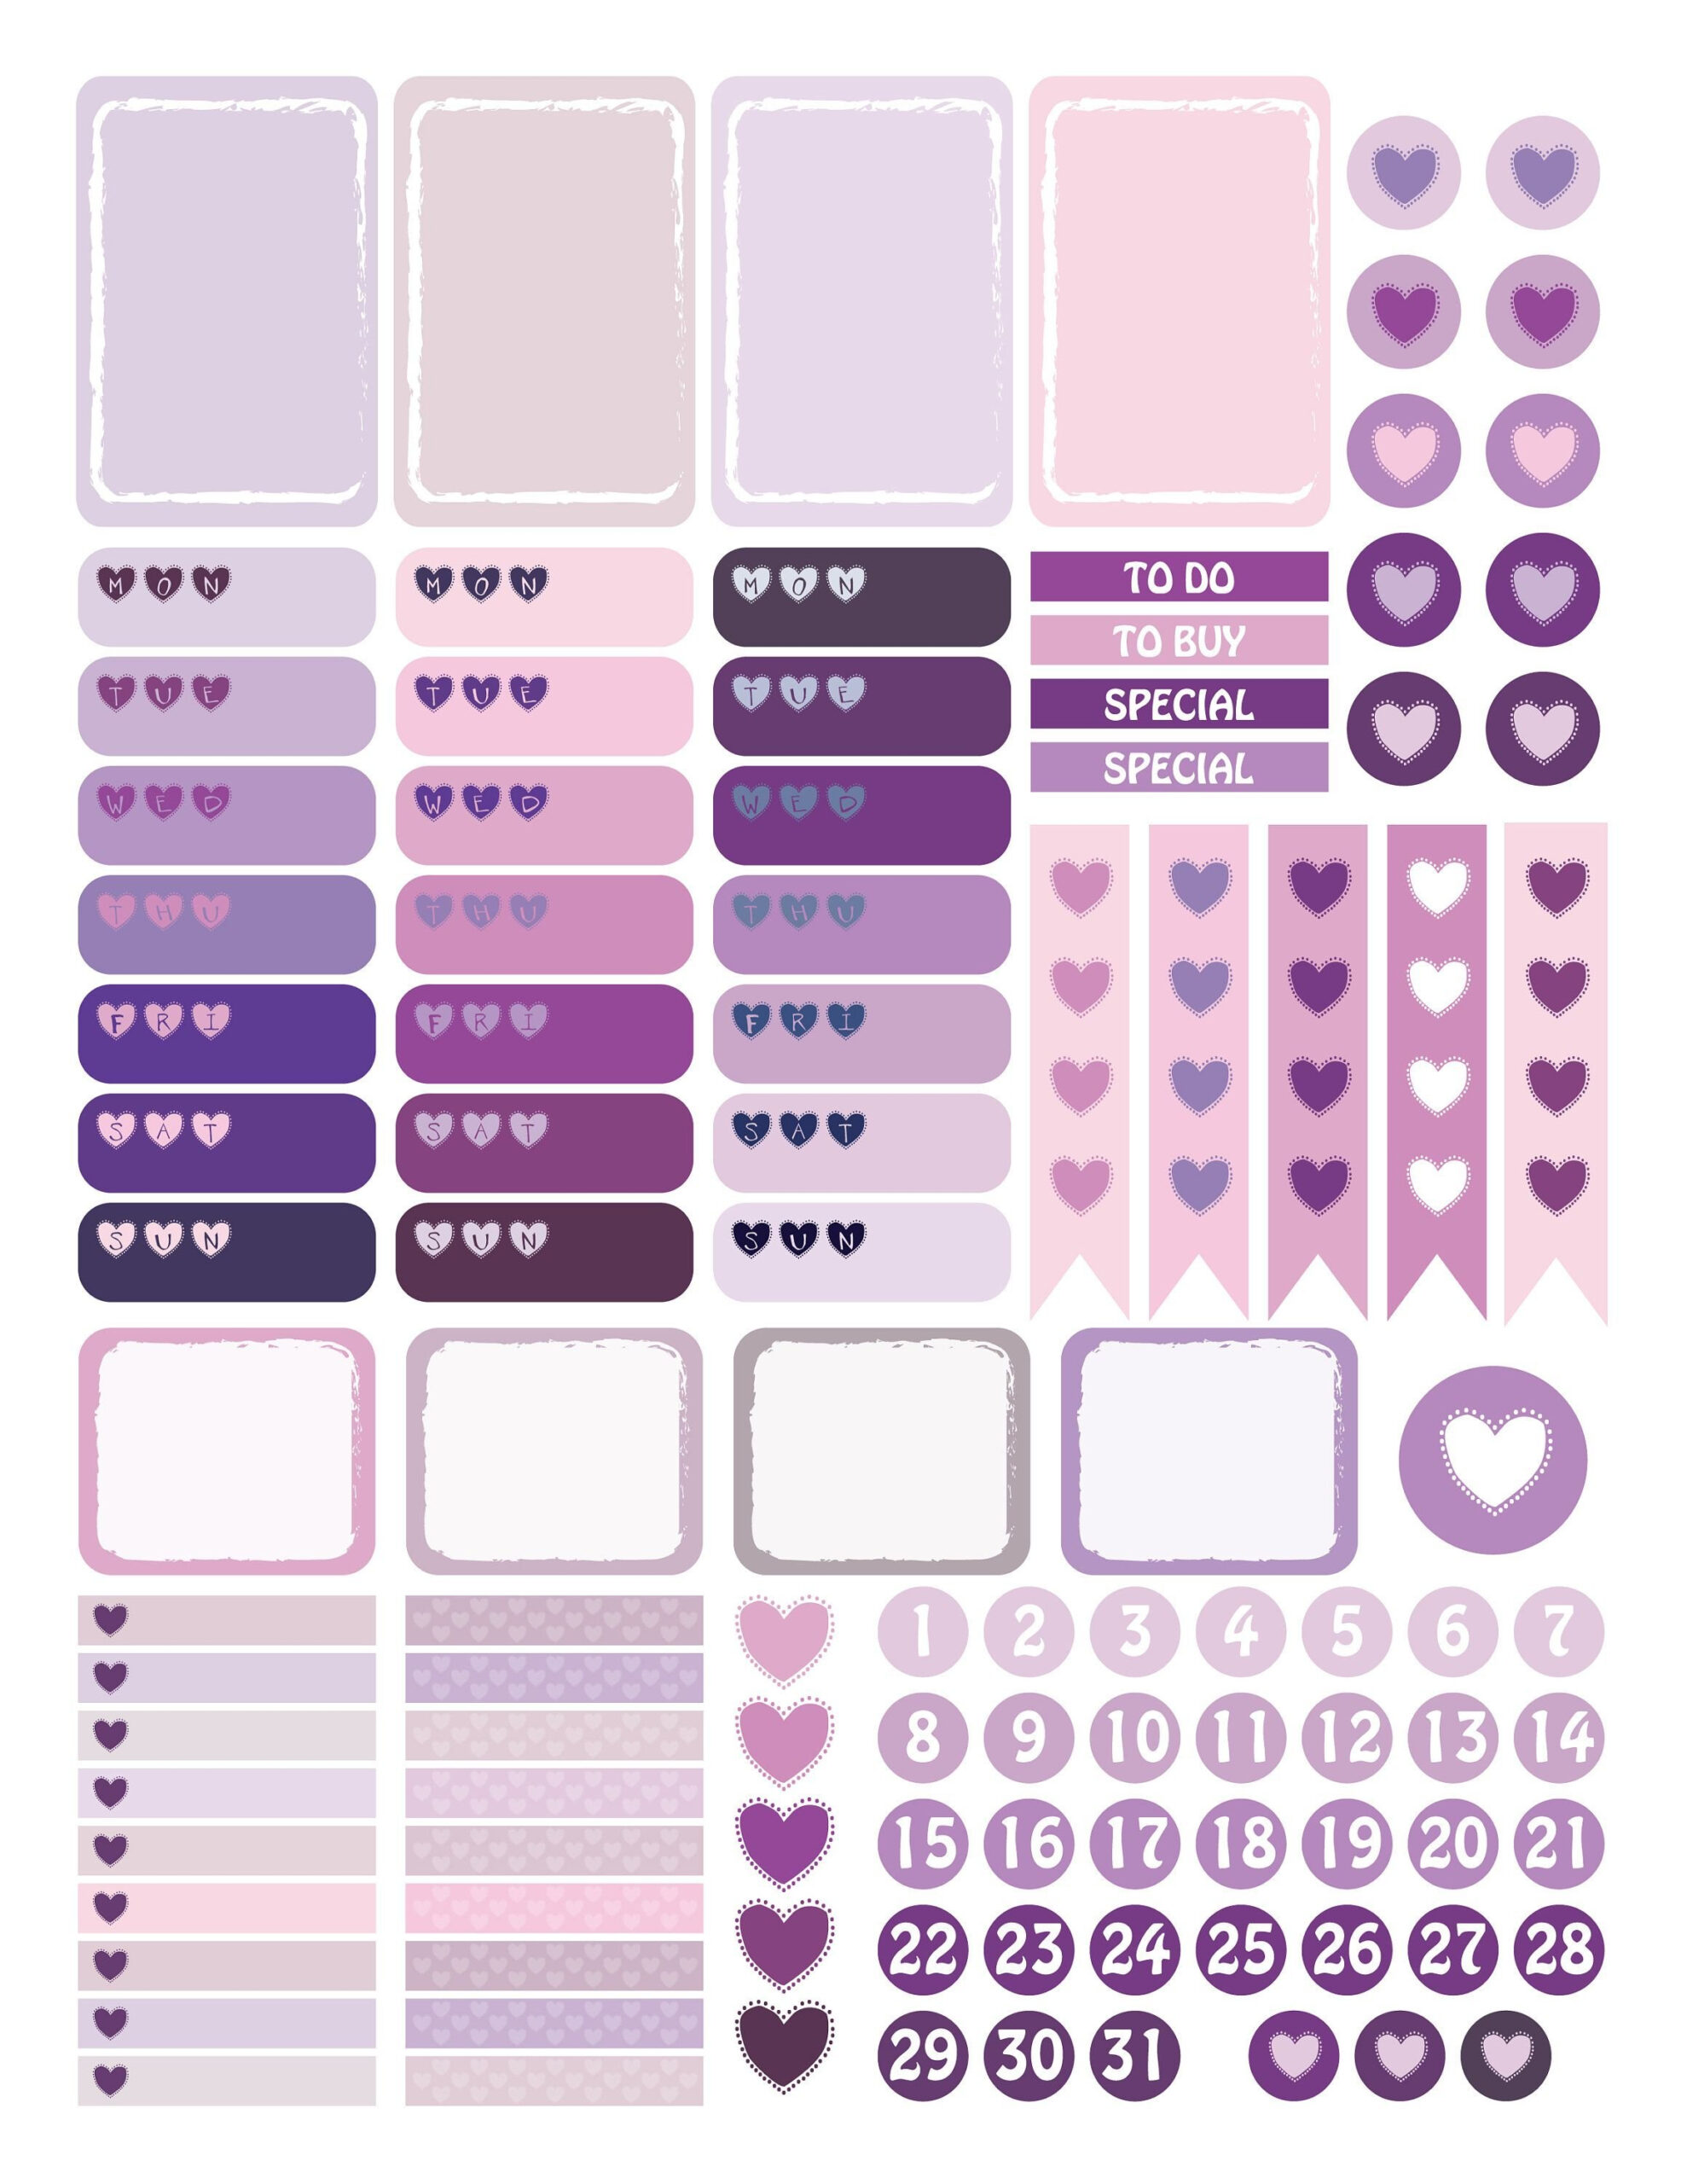 Planner Printable, Hearts Stickers, Happy Planner Stickers intended for Free Happy Planner Stickers Printable Graphics